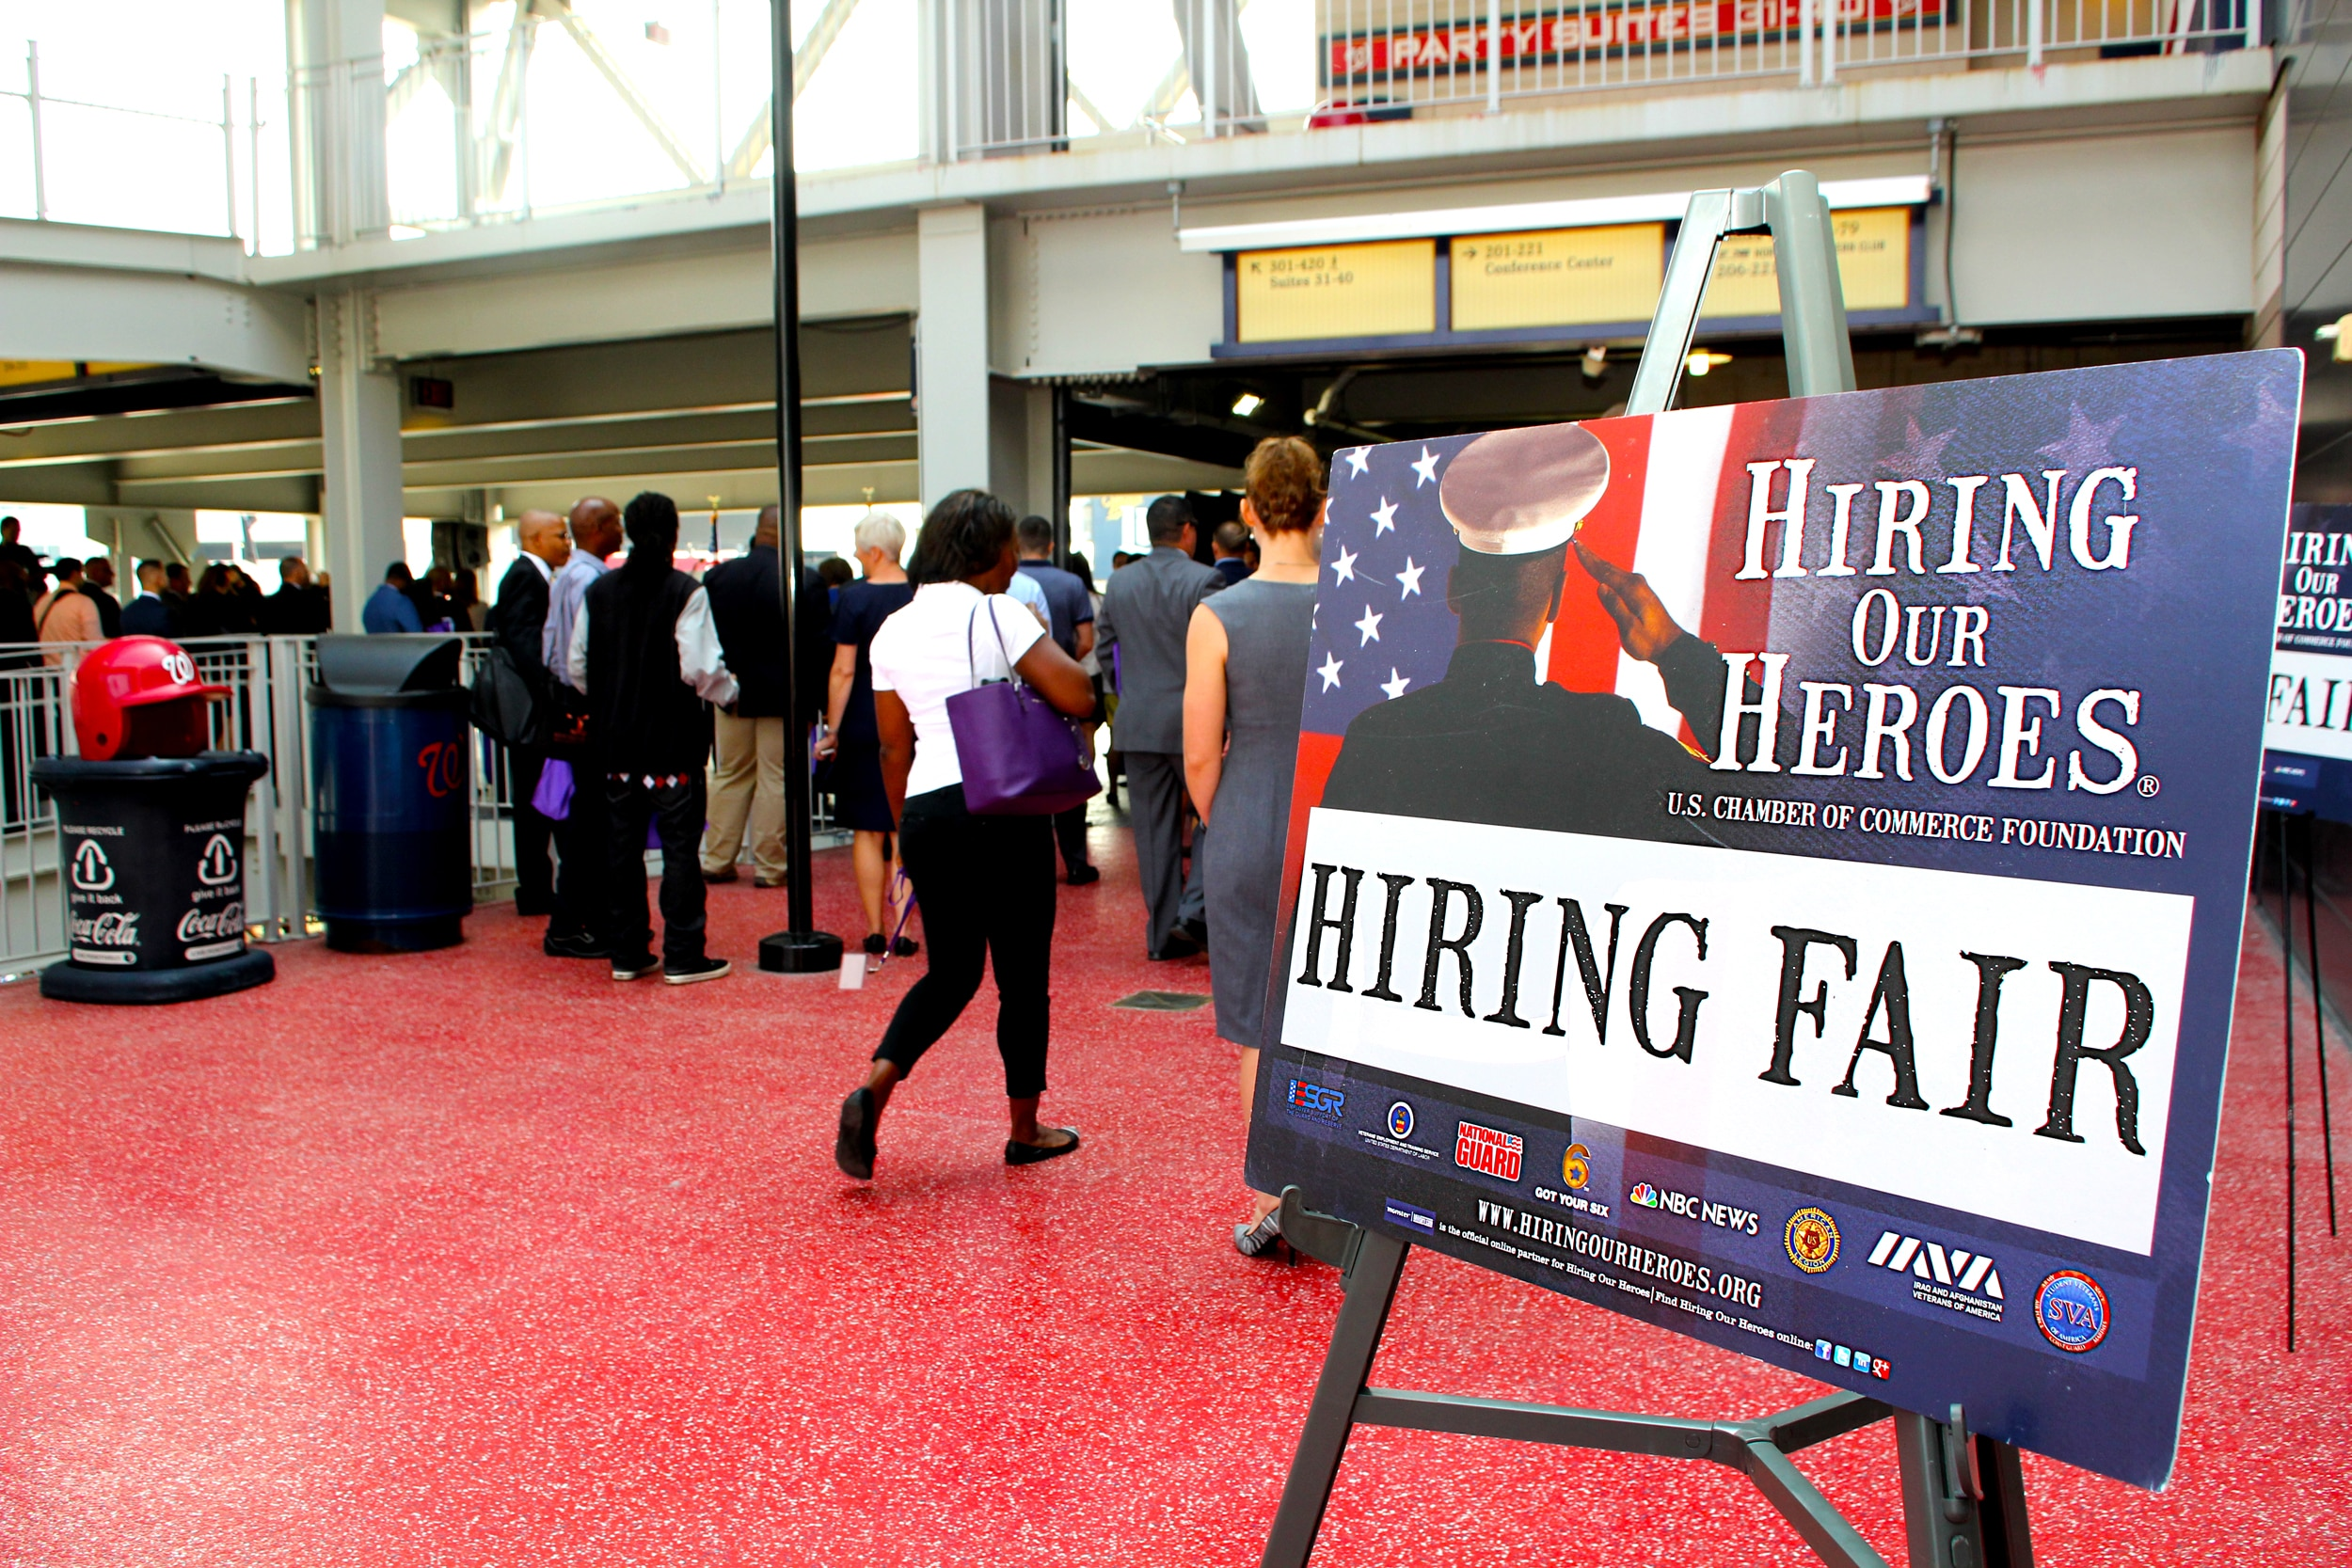 66 military and veteran job fairs through November — events nationwide